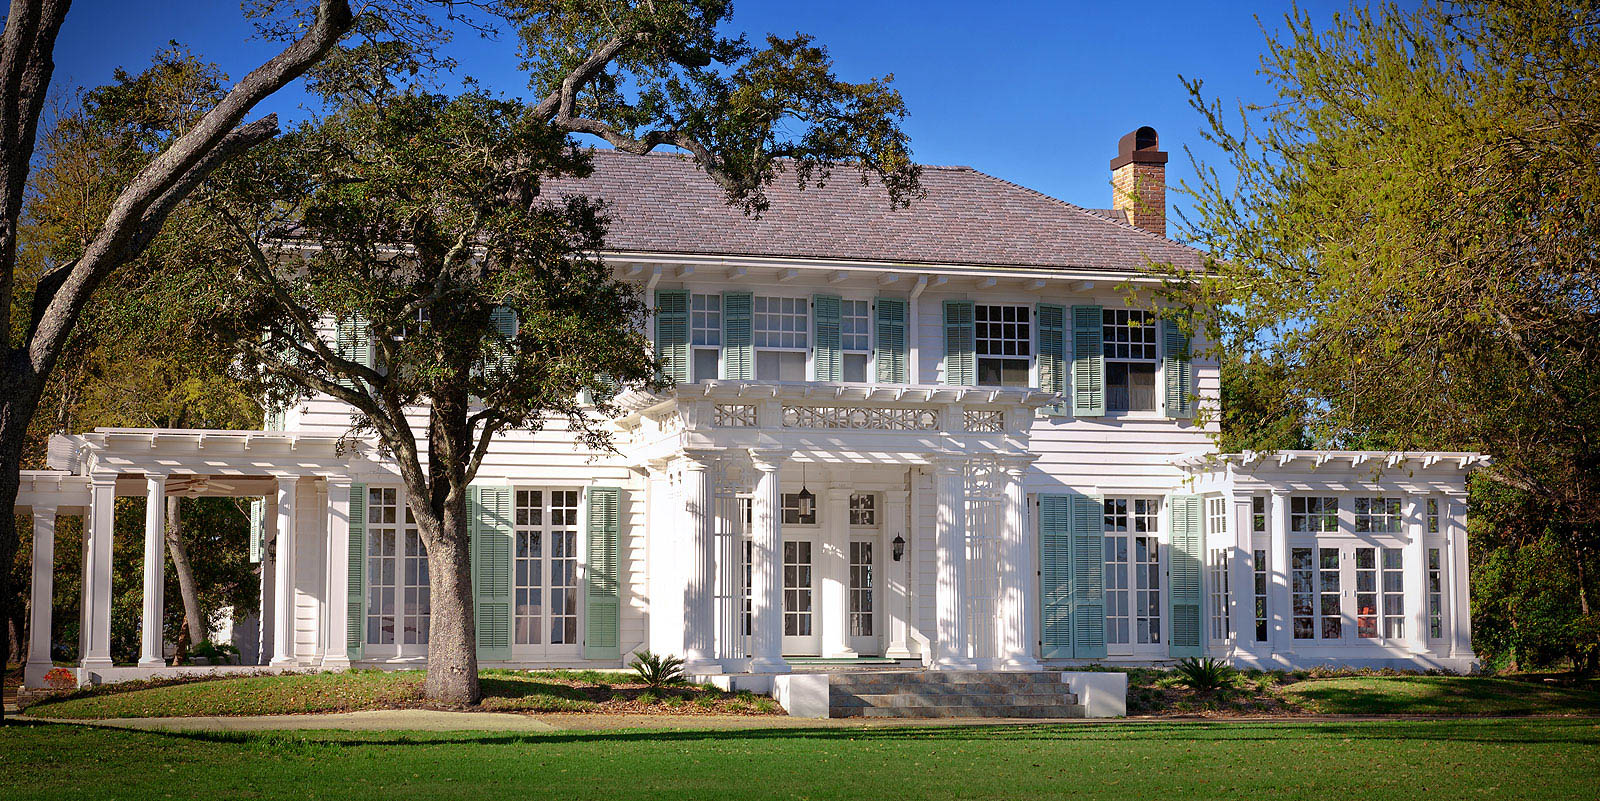 Stunning Home Exterior in Wilmington, NC